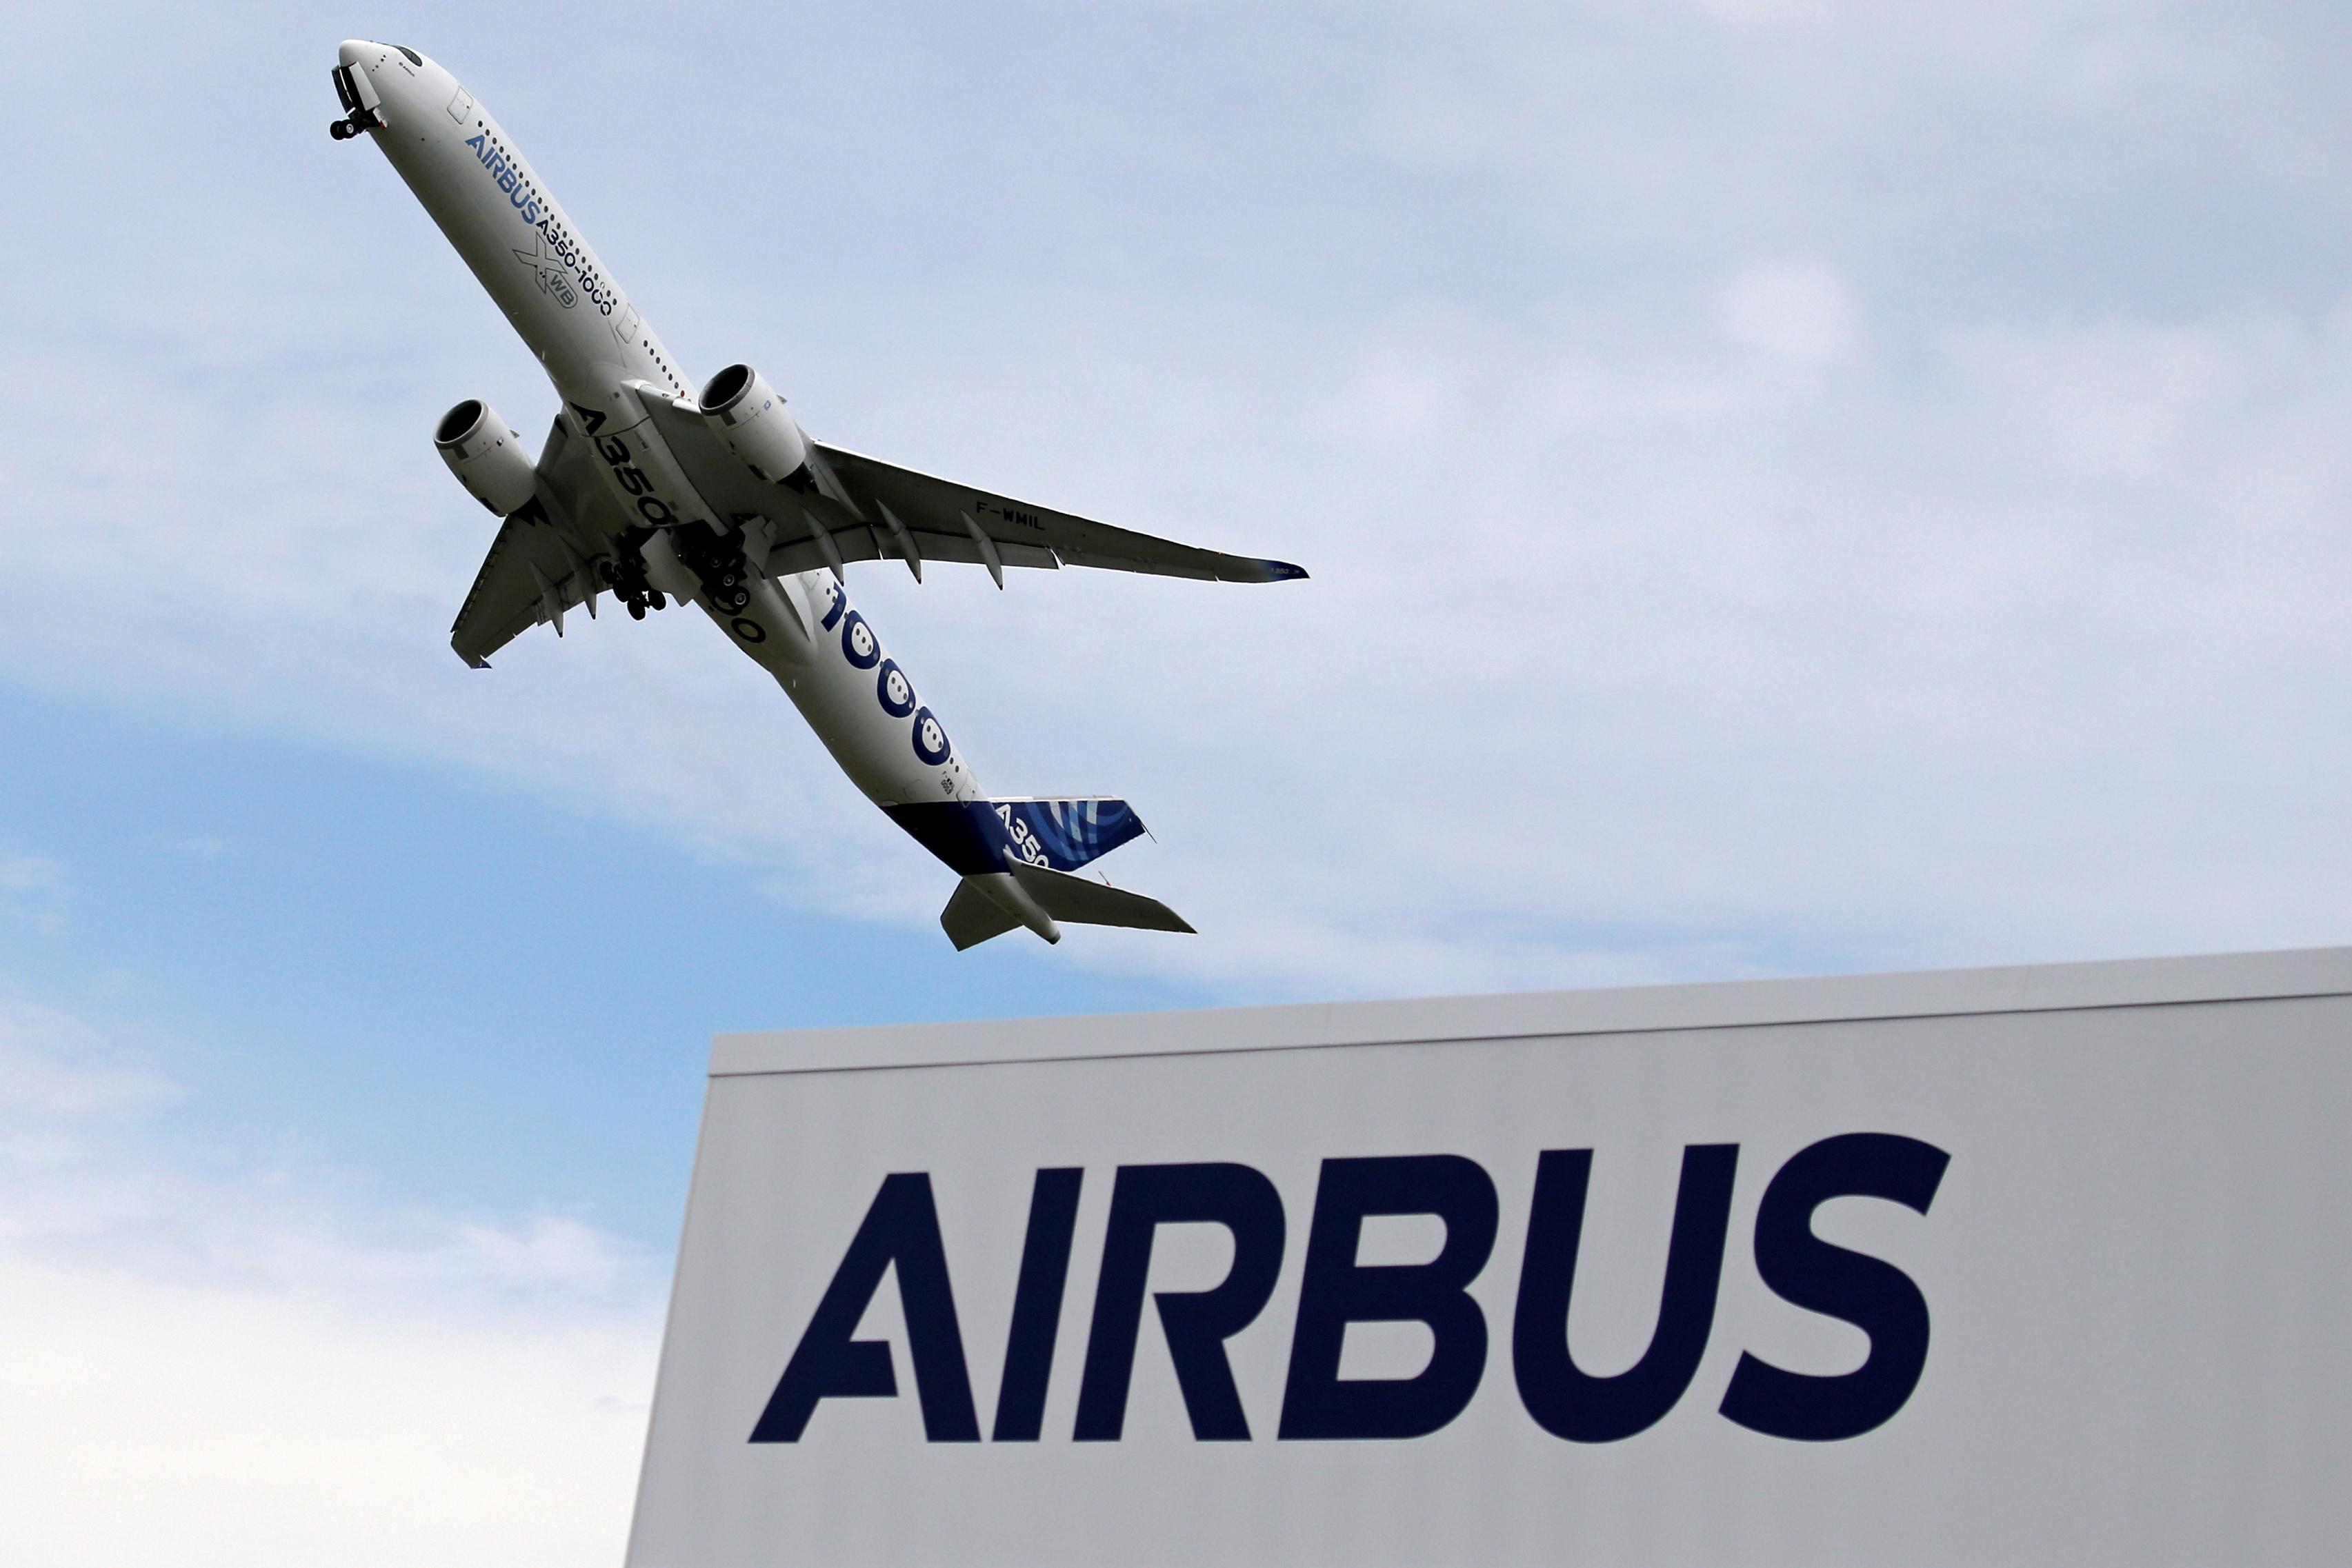 Airbus aims to sell more than 1,000 planes over 15 years in Latin America, Caribbean